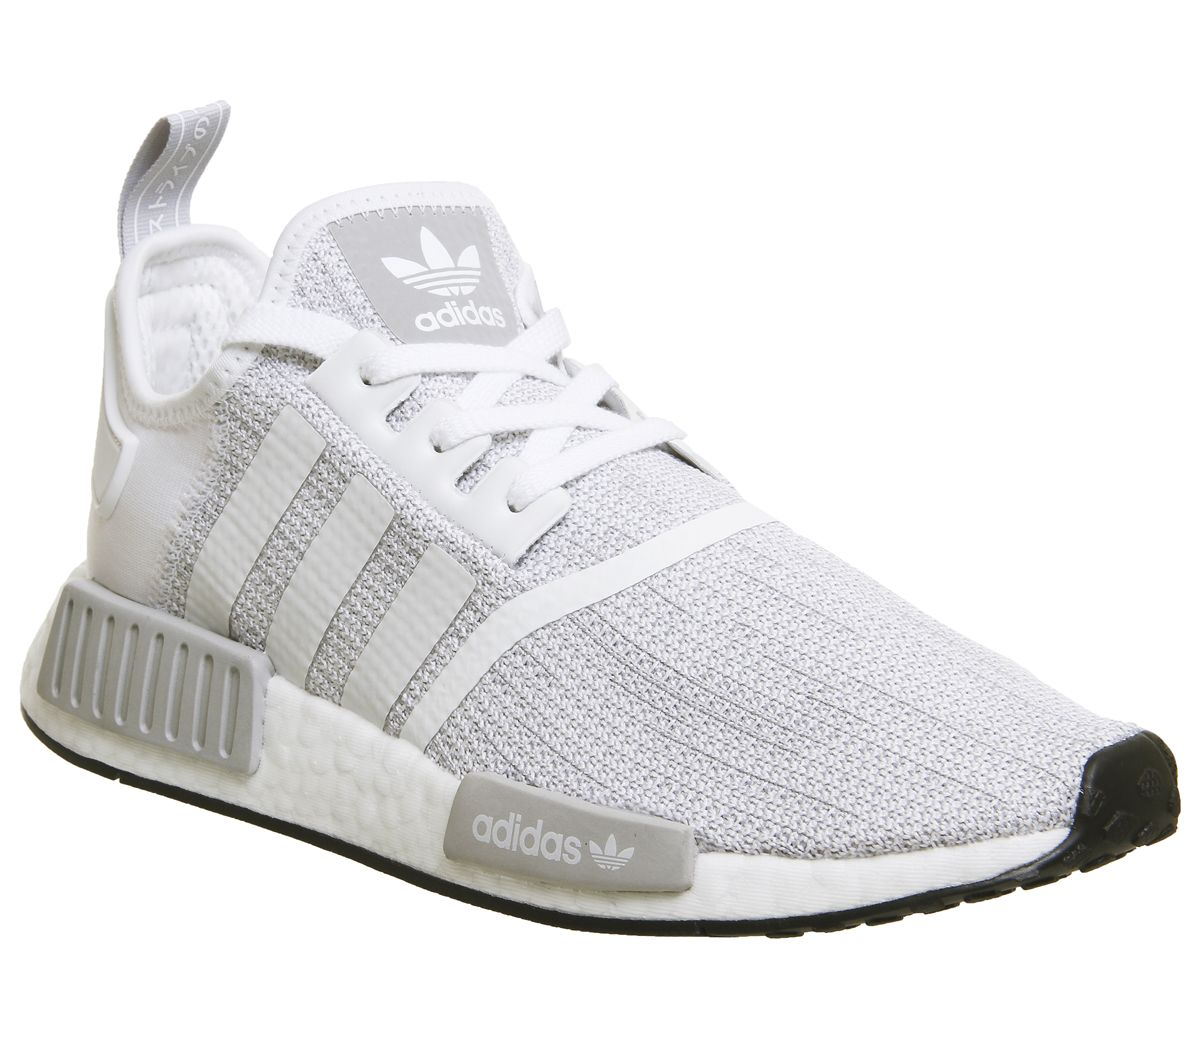 df8f7296c adidas Nmd R1 Trainers White Grey Core Black - His trainers